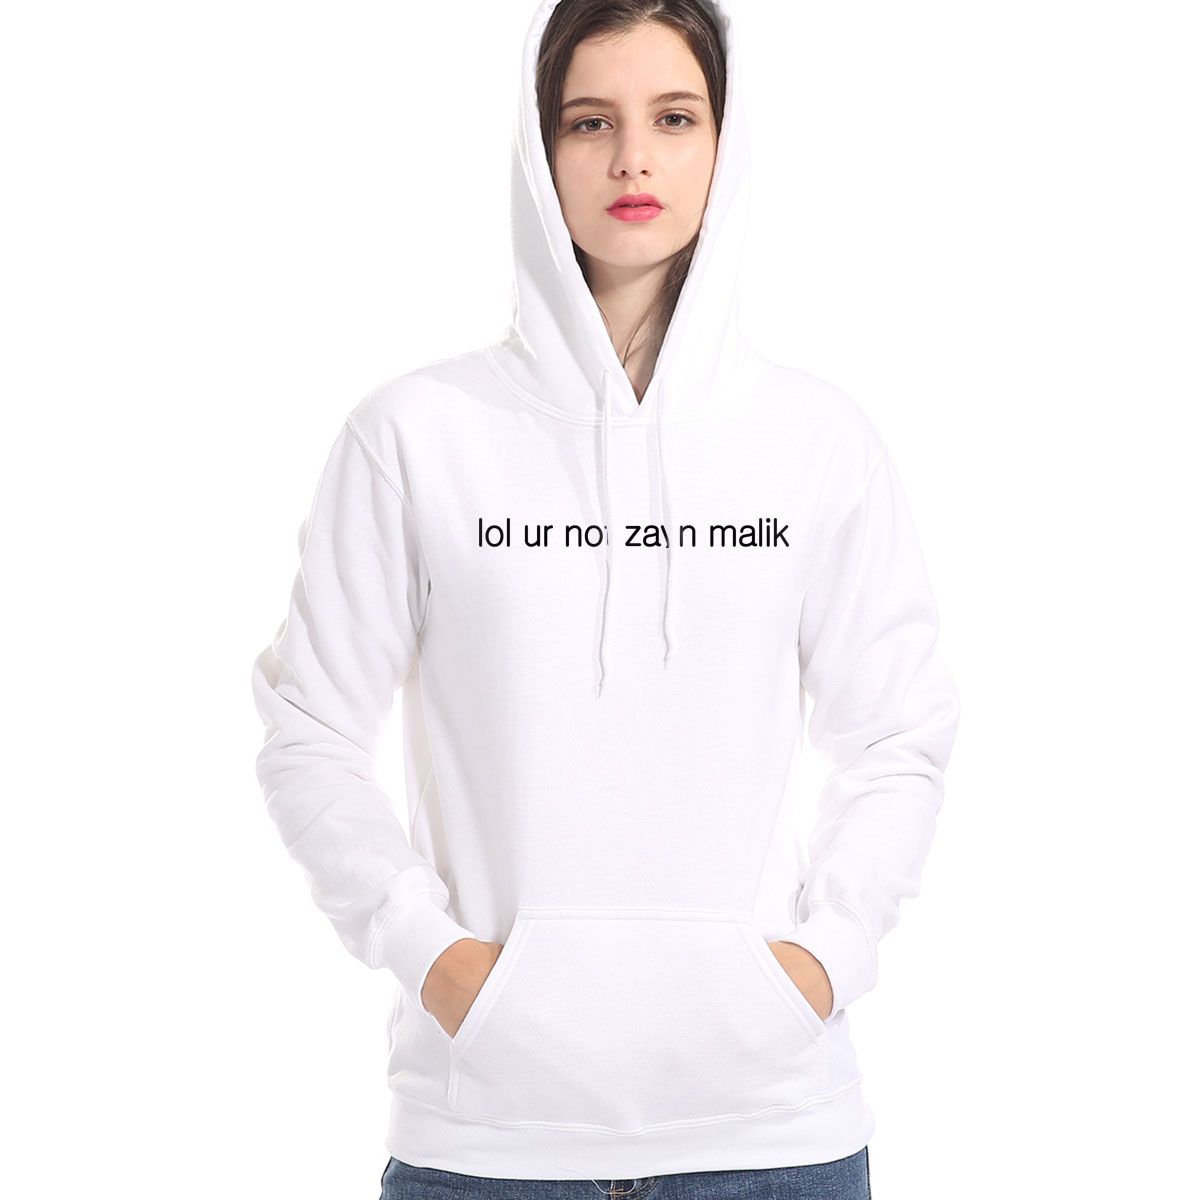 Kawaii Casual Hoodies For Women LOL UR NOT ZAYN MALIK Letter Print Female Sportwear Suit Hoody Harajuku Hot Women's Pullover Top